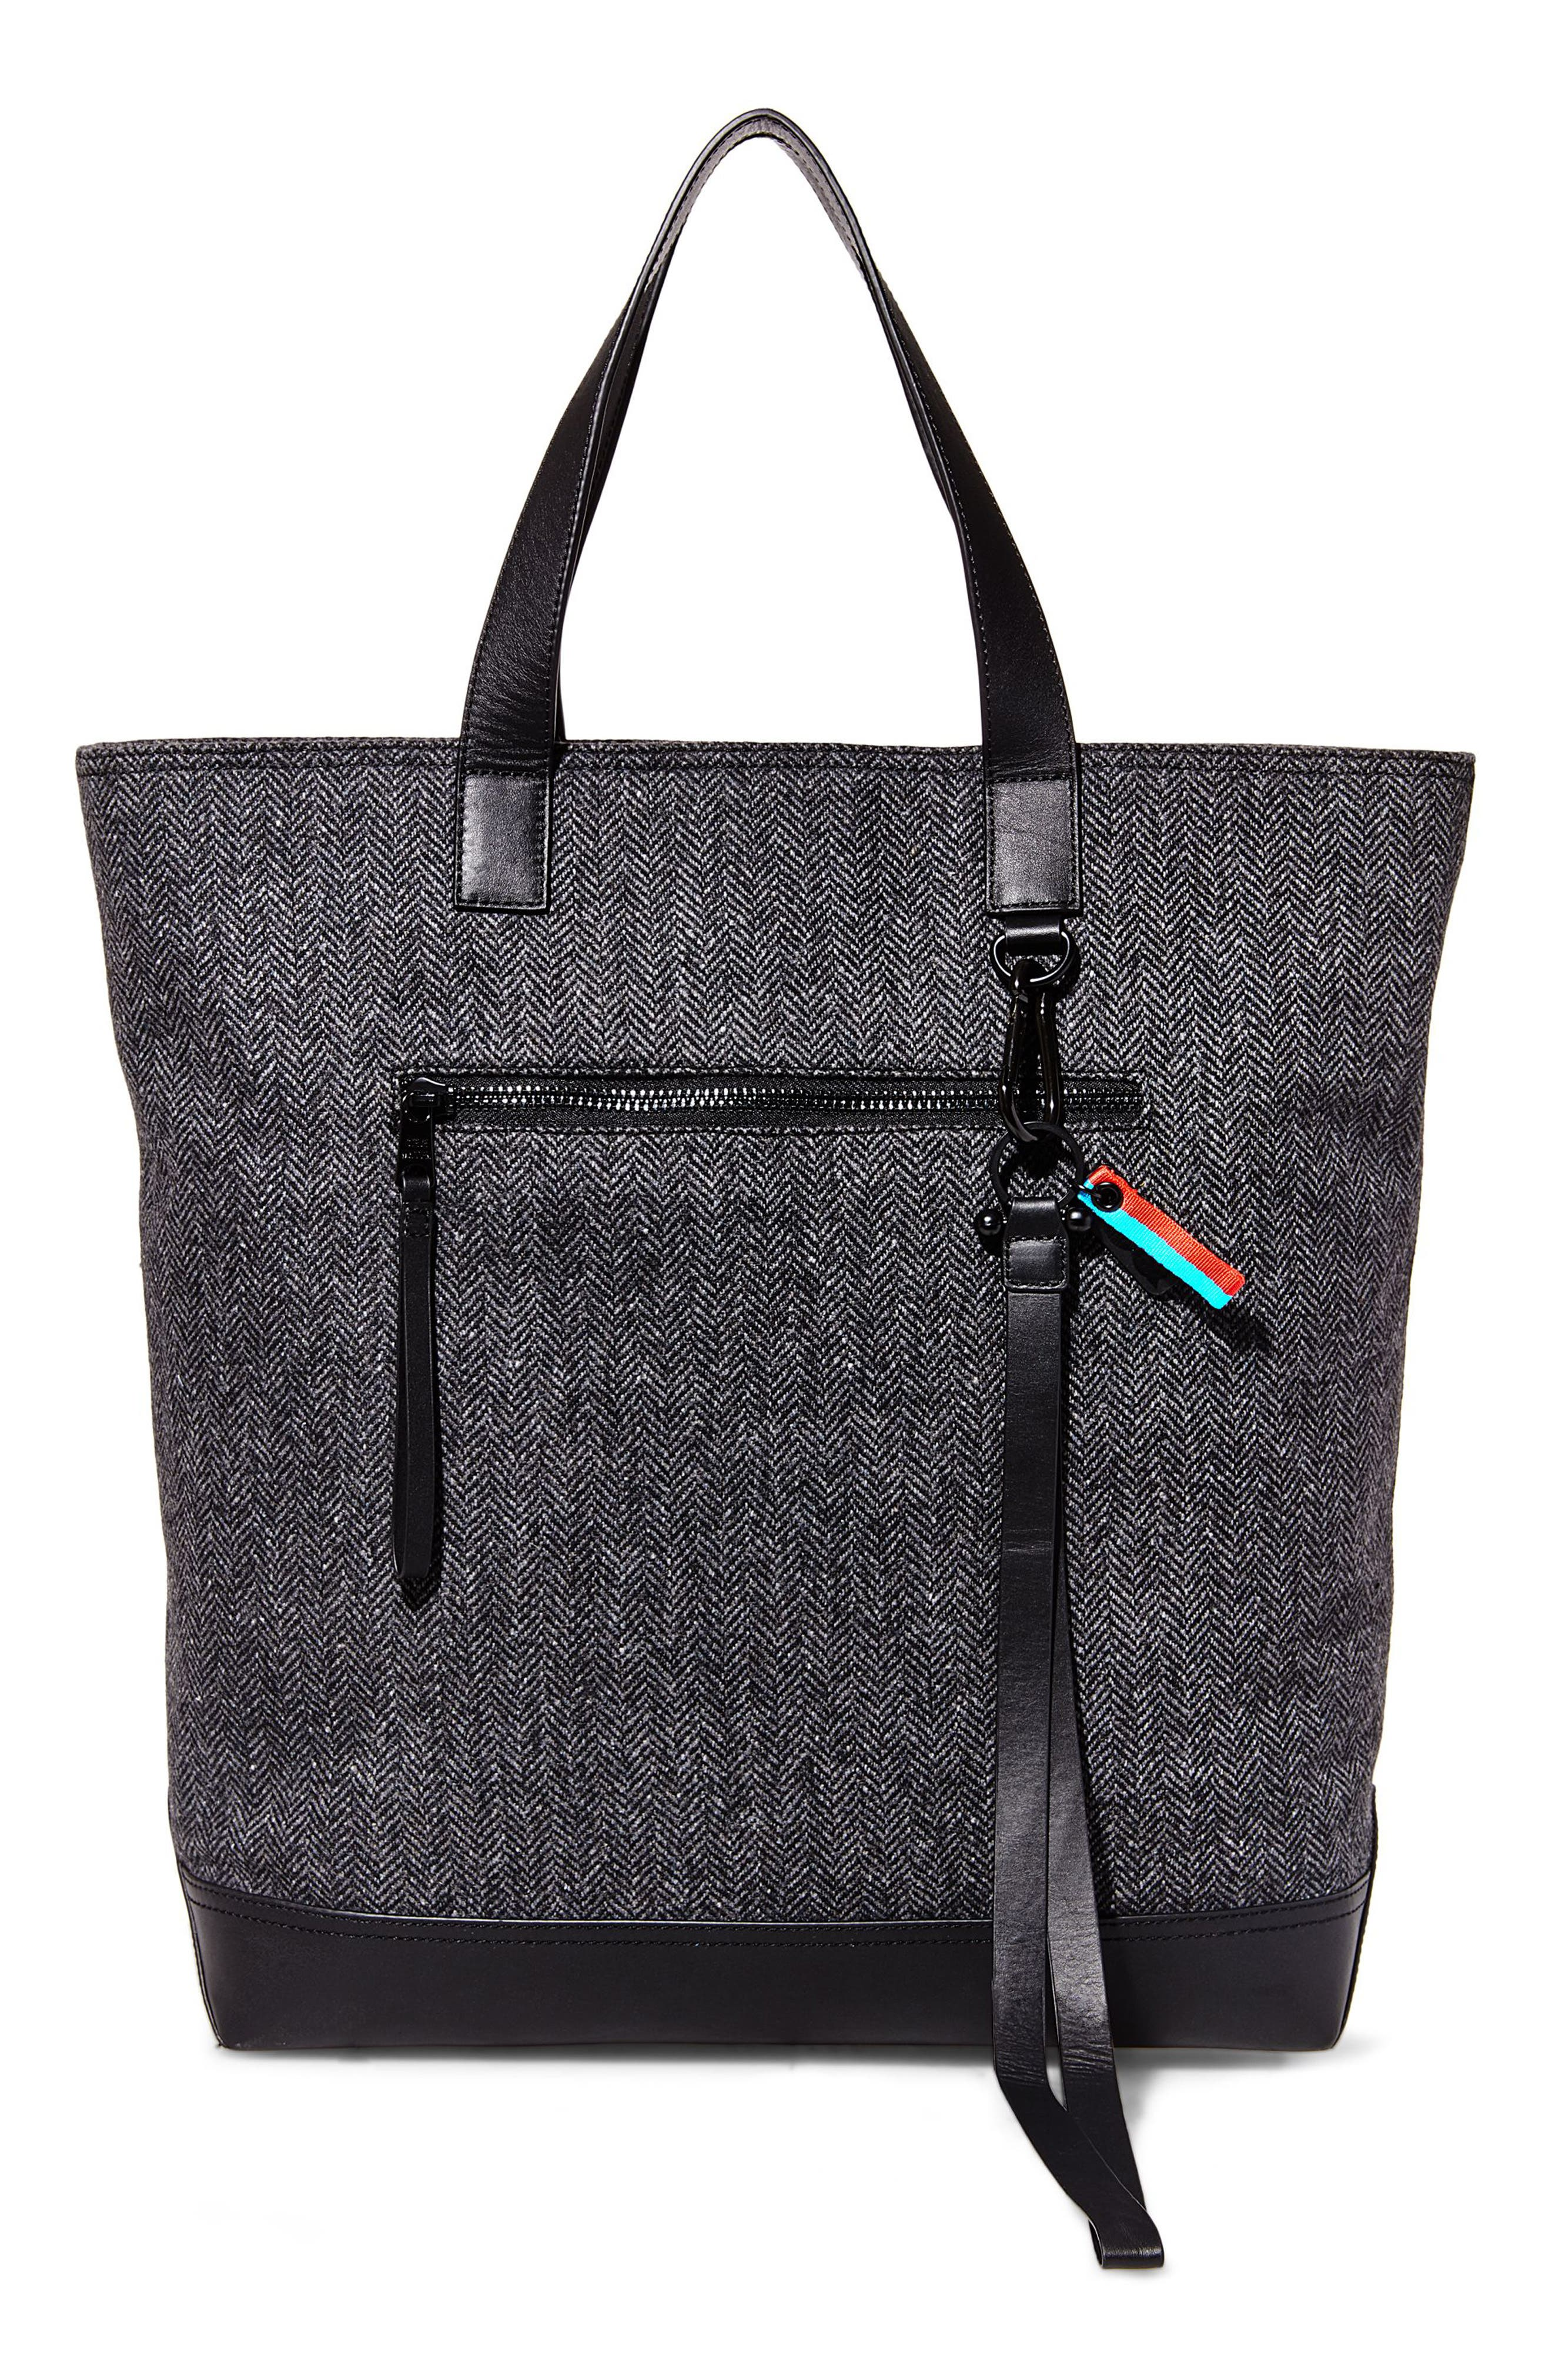 GQ x Steve Madden Tote Bag,                         Main,                         color, Grey